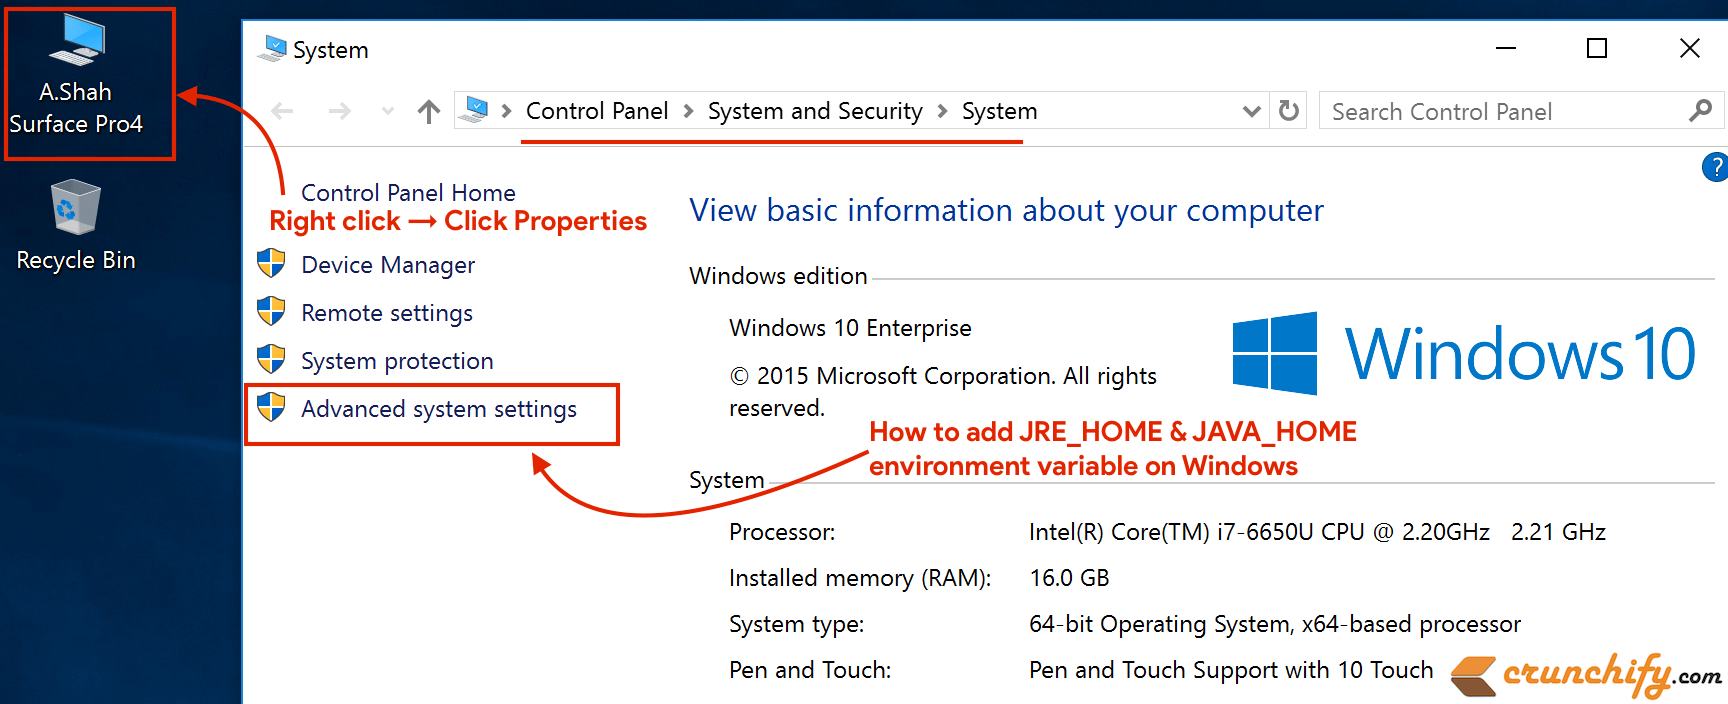 How to Setup, Configure JAVA_HOME and JRE_HOME Environment Variables